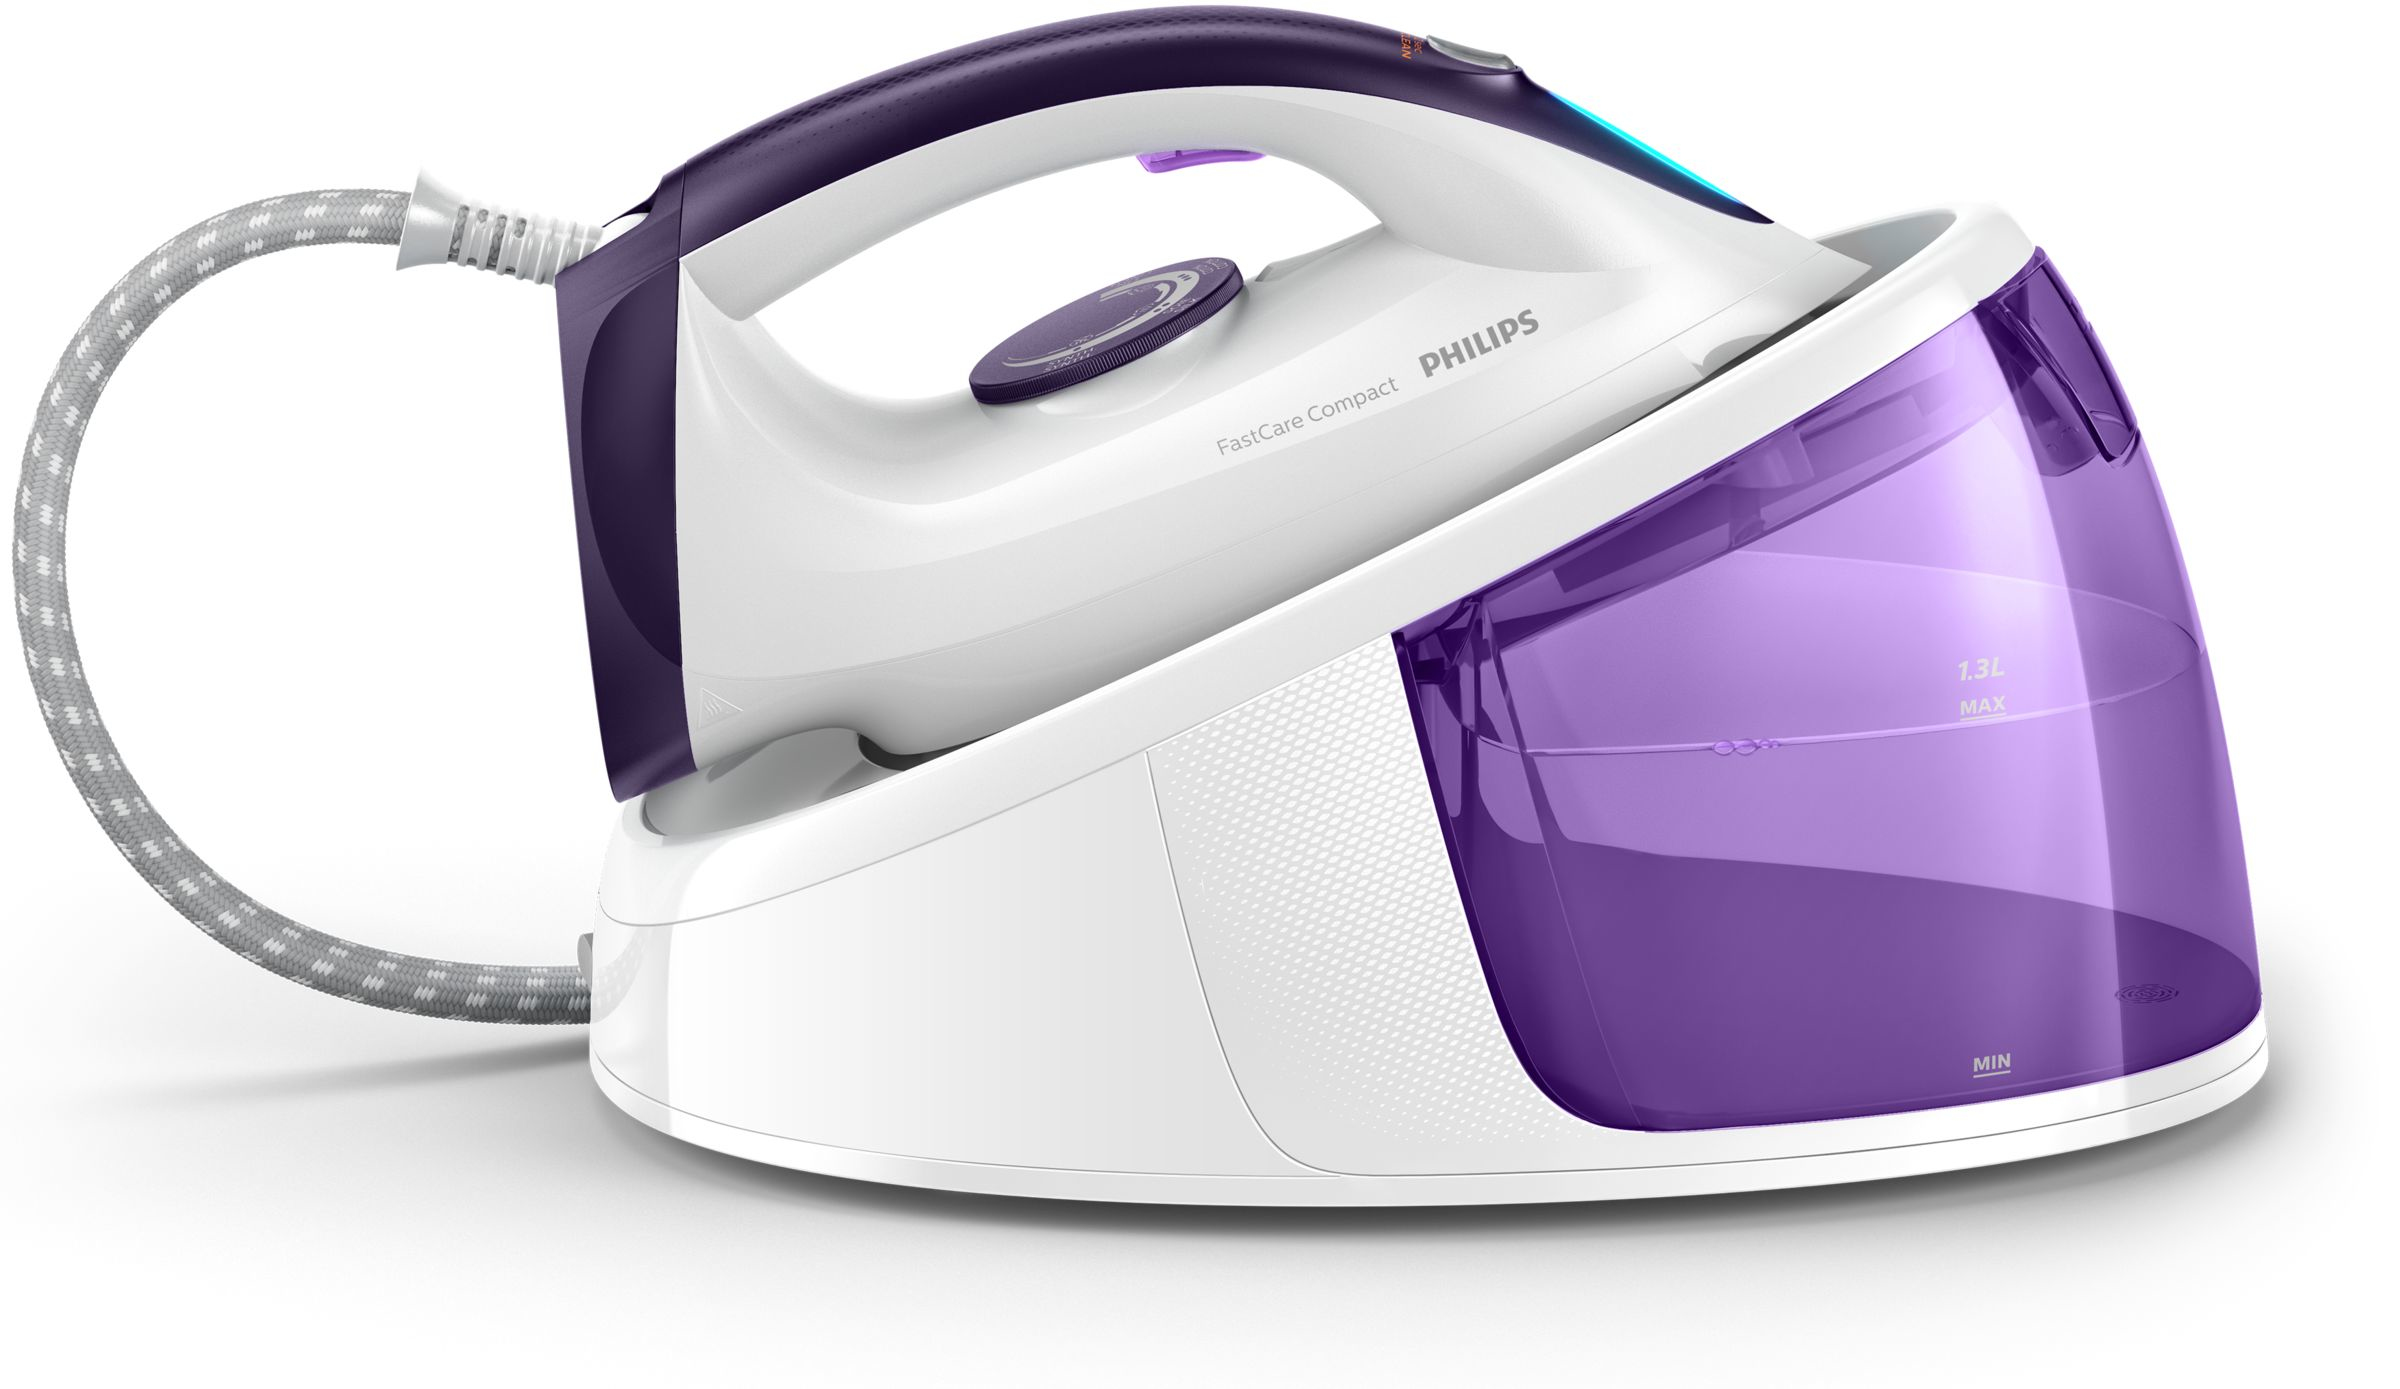 Philips FastCare Compact Steam Generator Iron